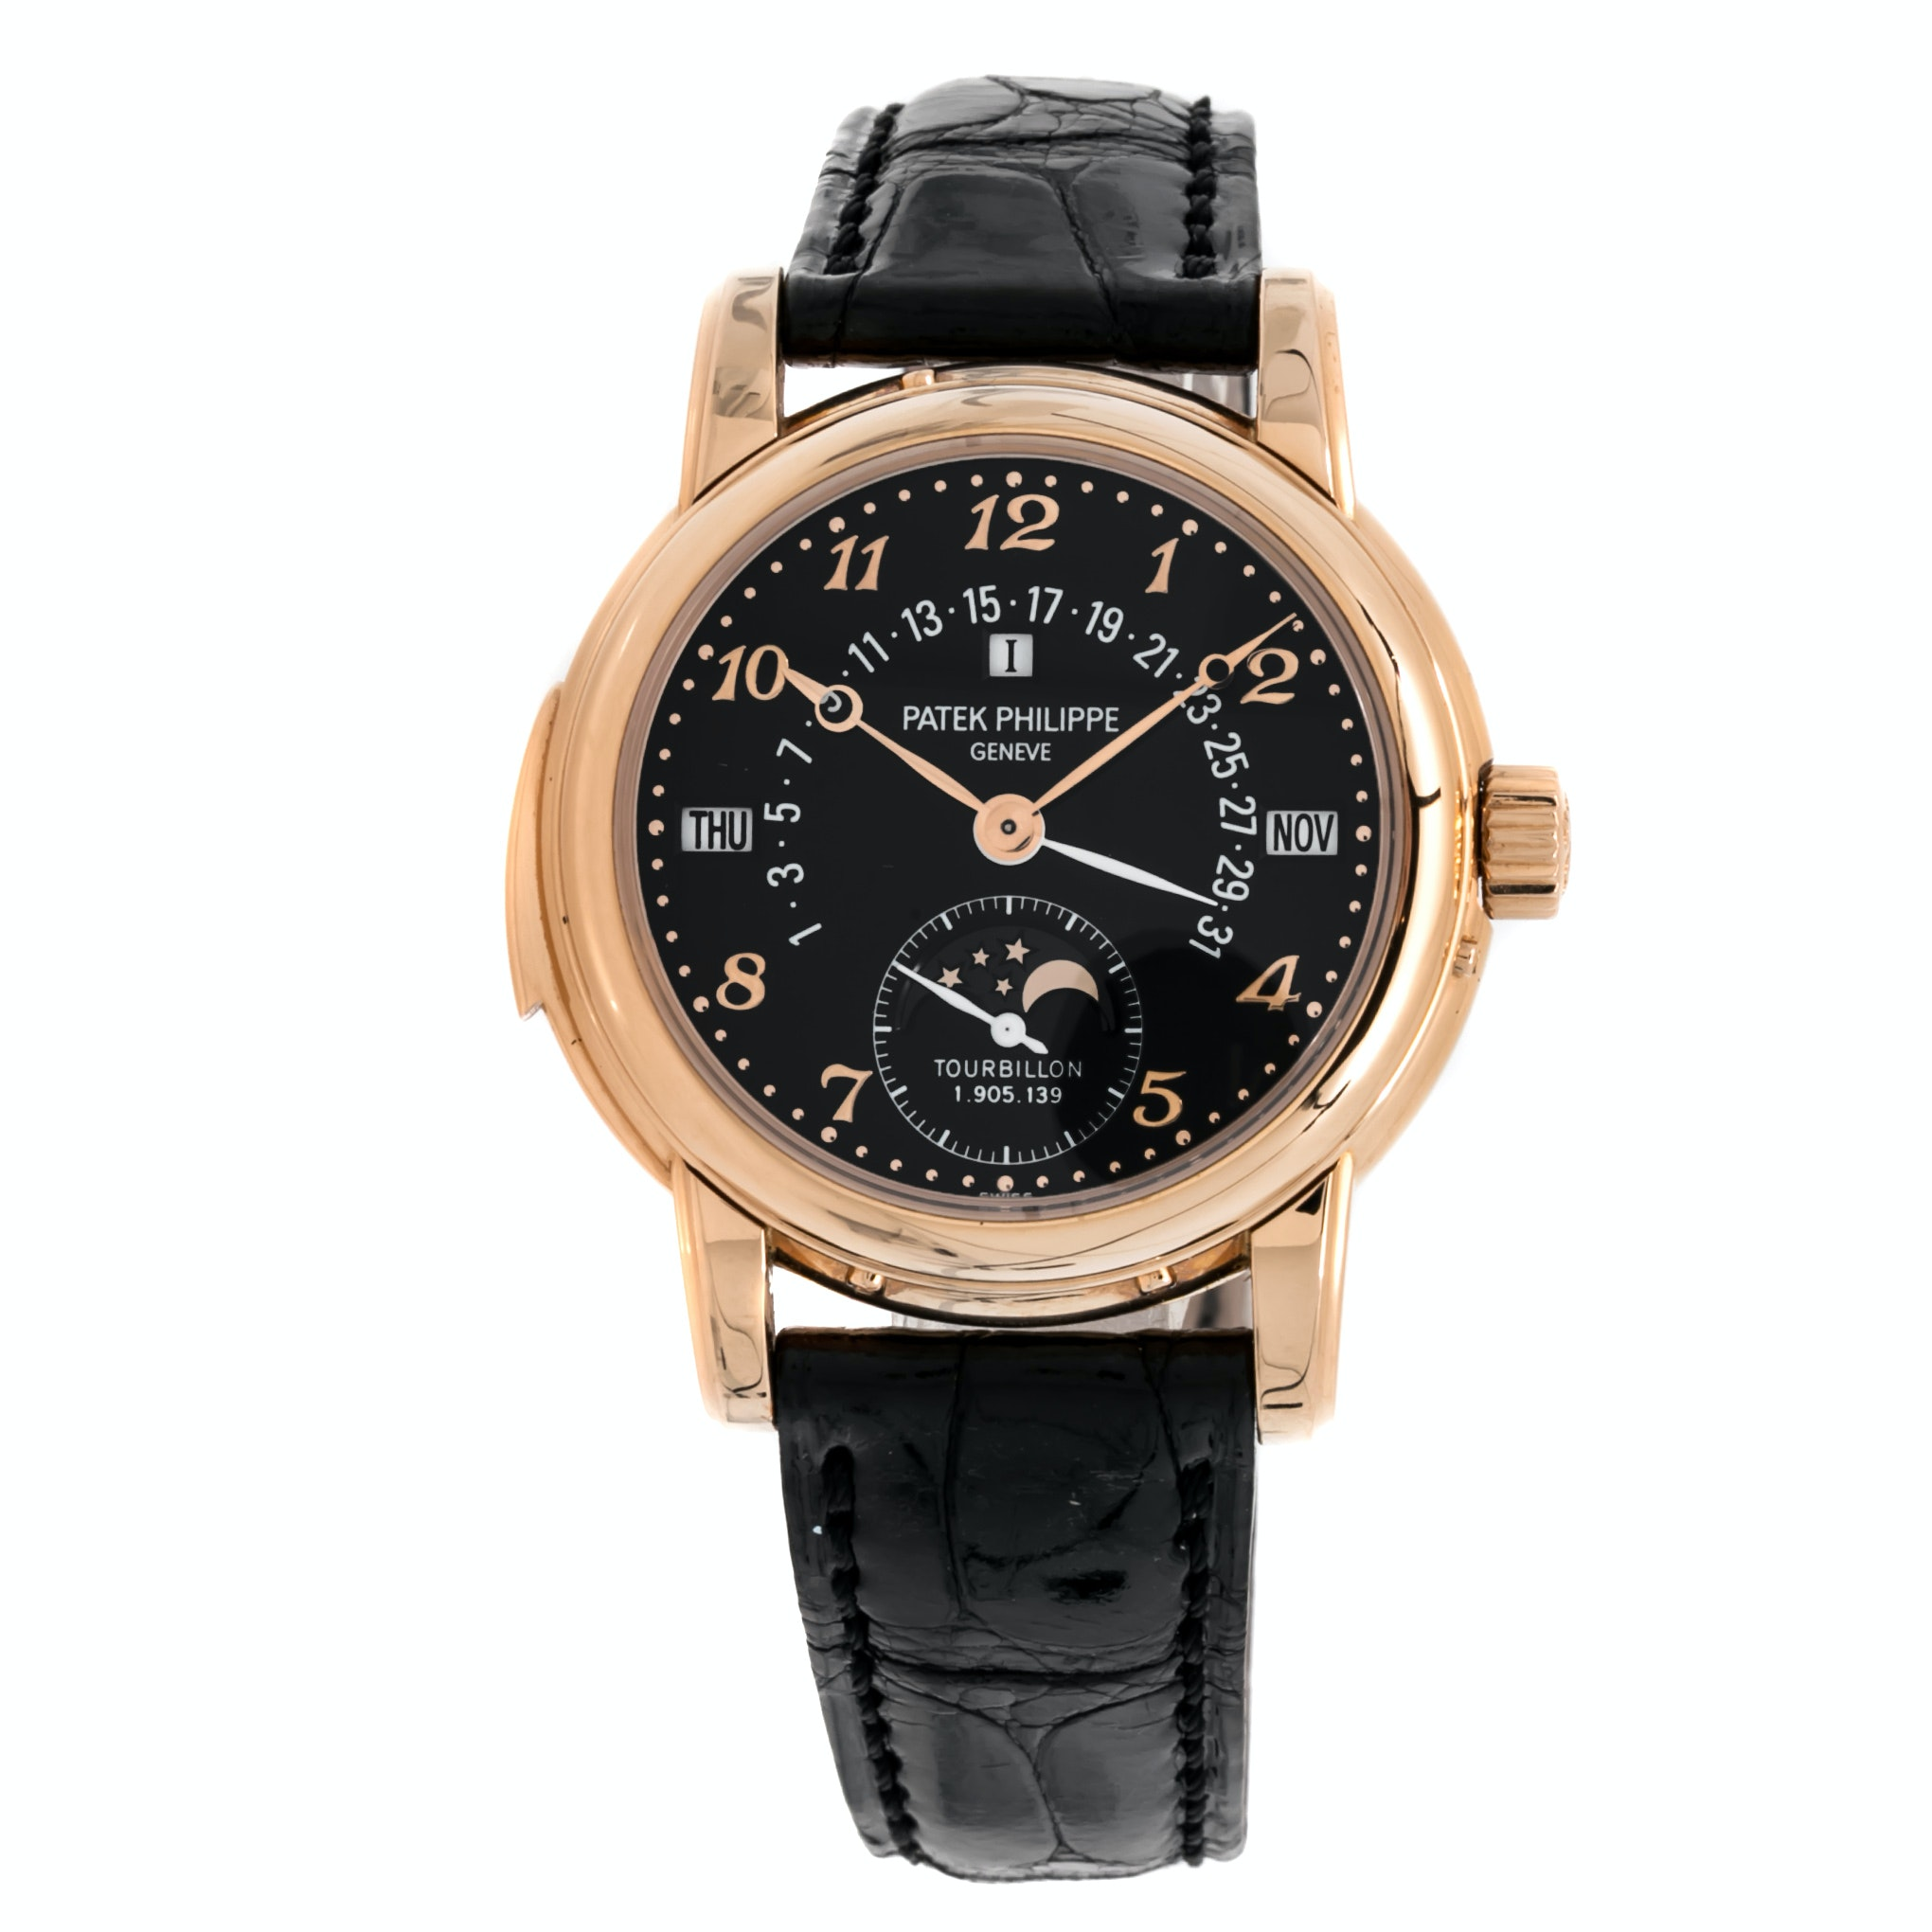 Patek Philippe Grand Complications Minute Repeater Perpetual Calendar Black Dial 5016R-11